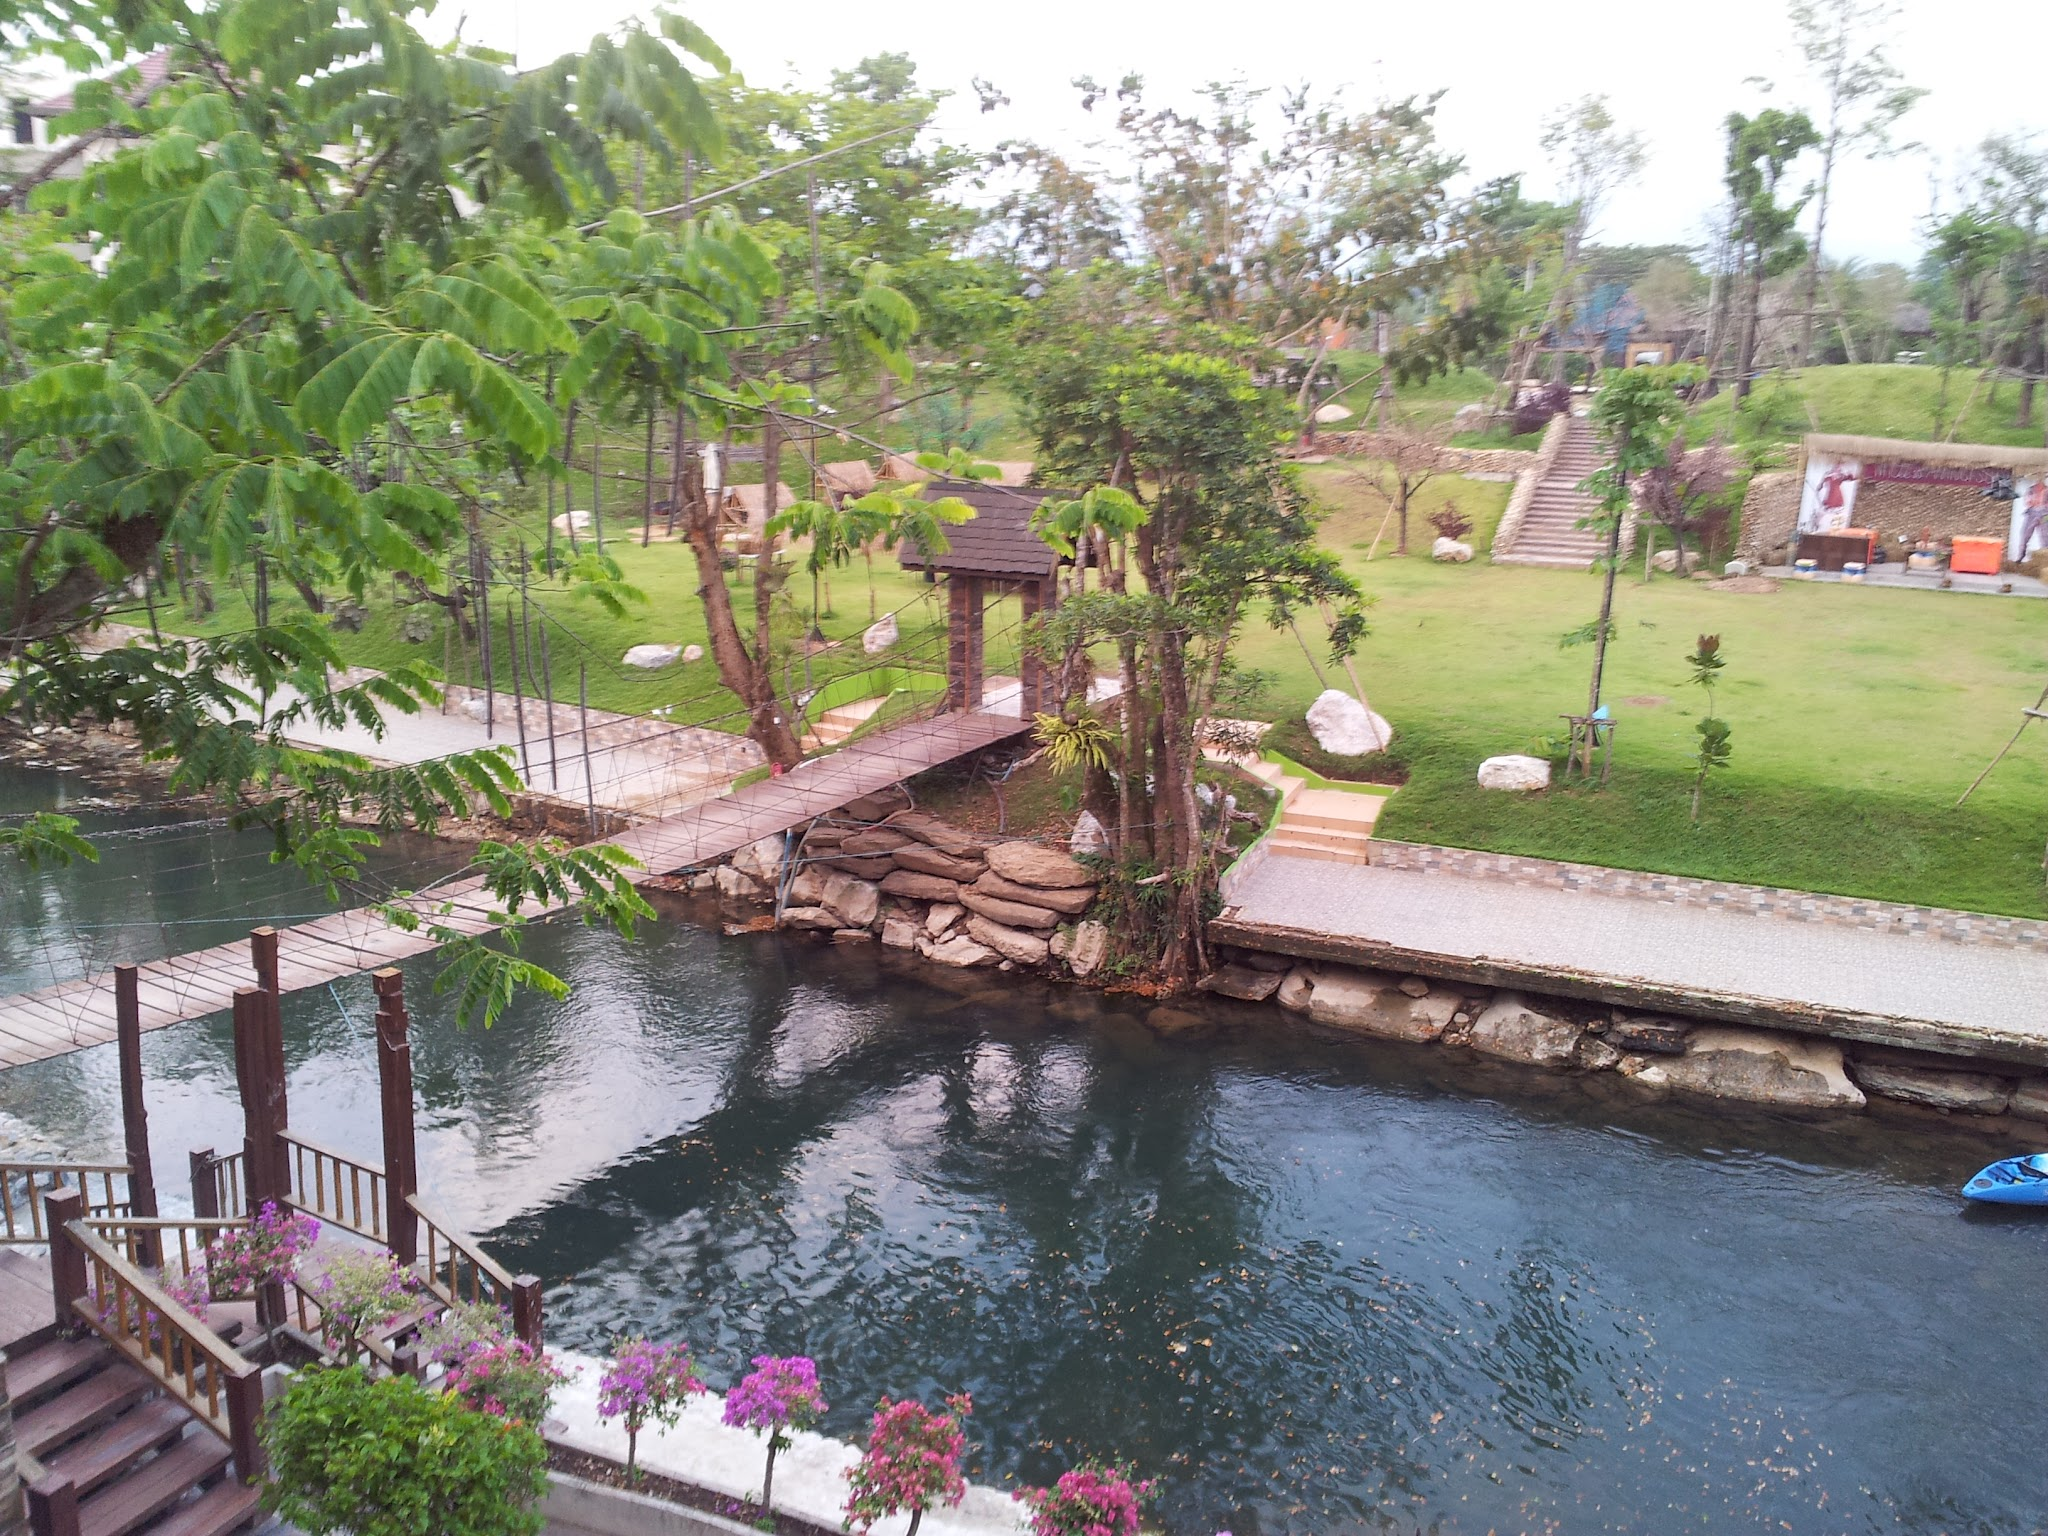 Resort at Khao Yai National Park